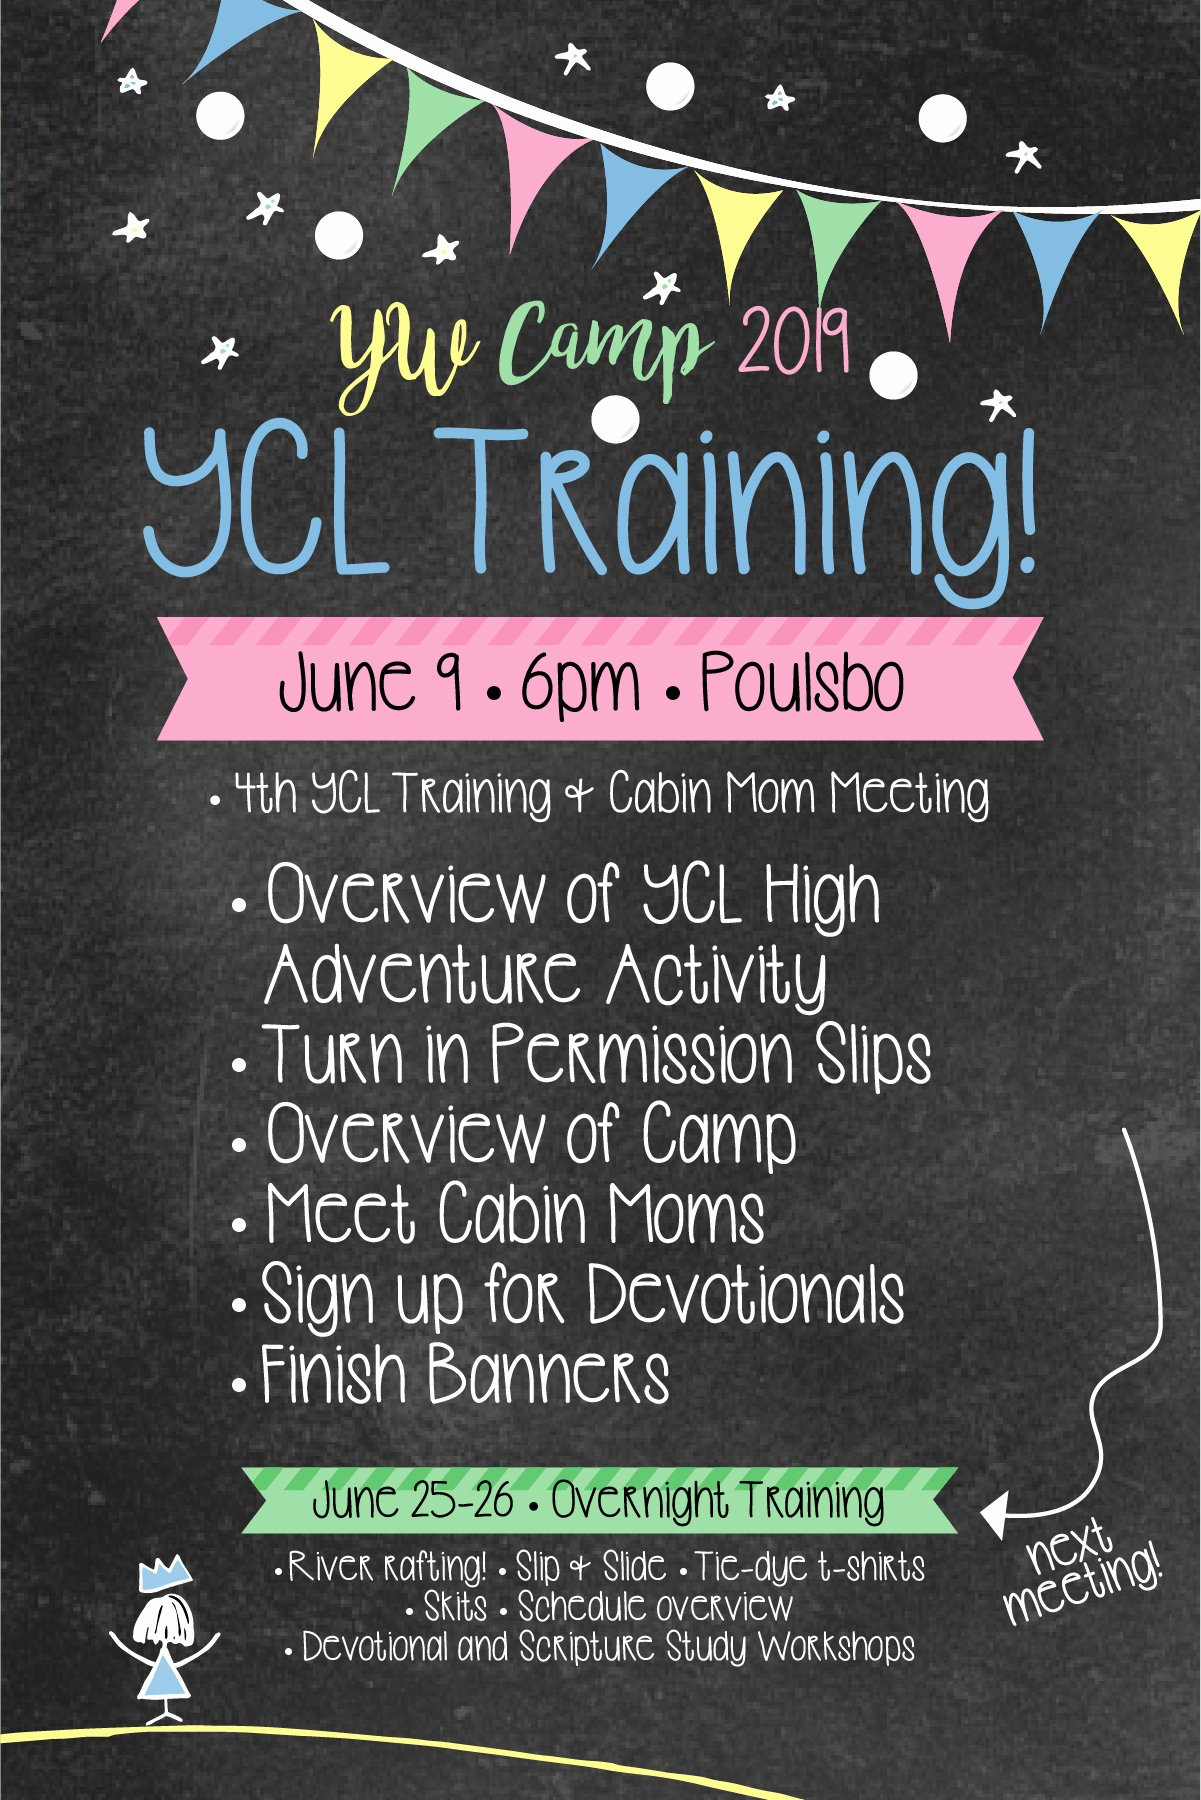 Lds Youth Permission Slips Unique Ycl Training • June 9